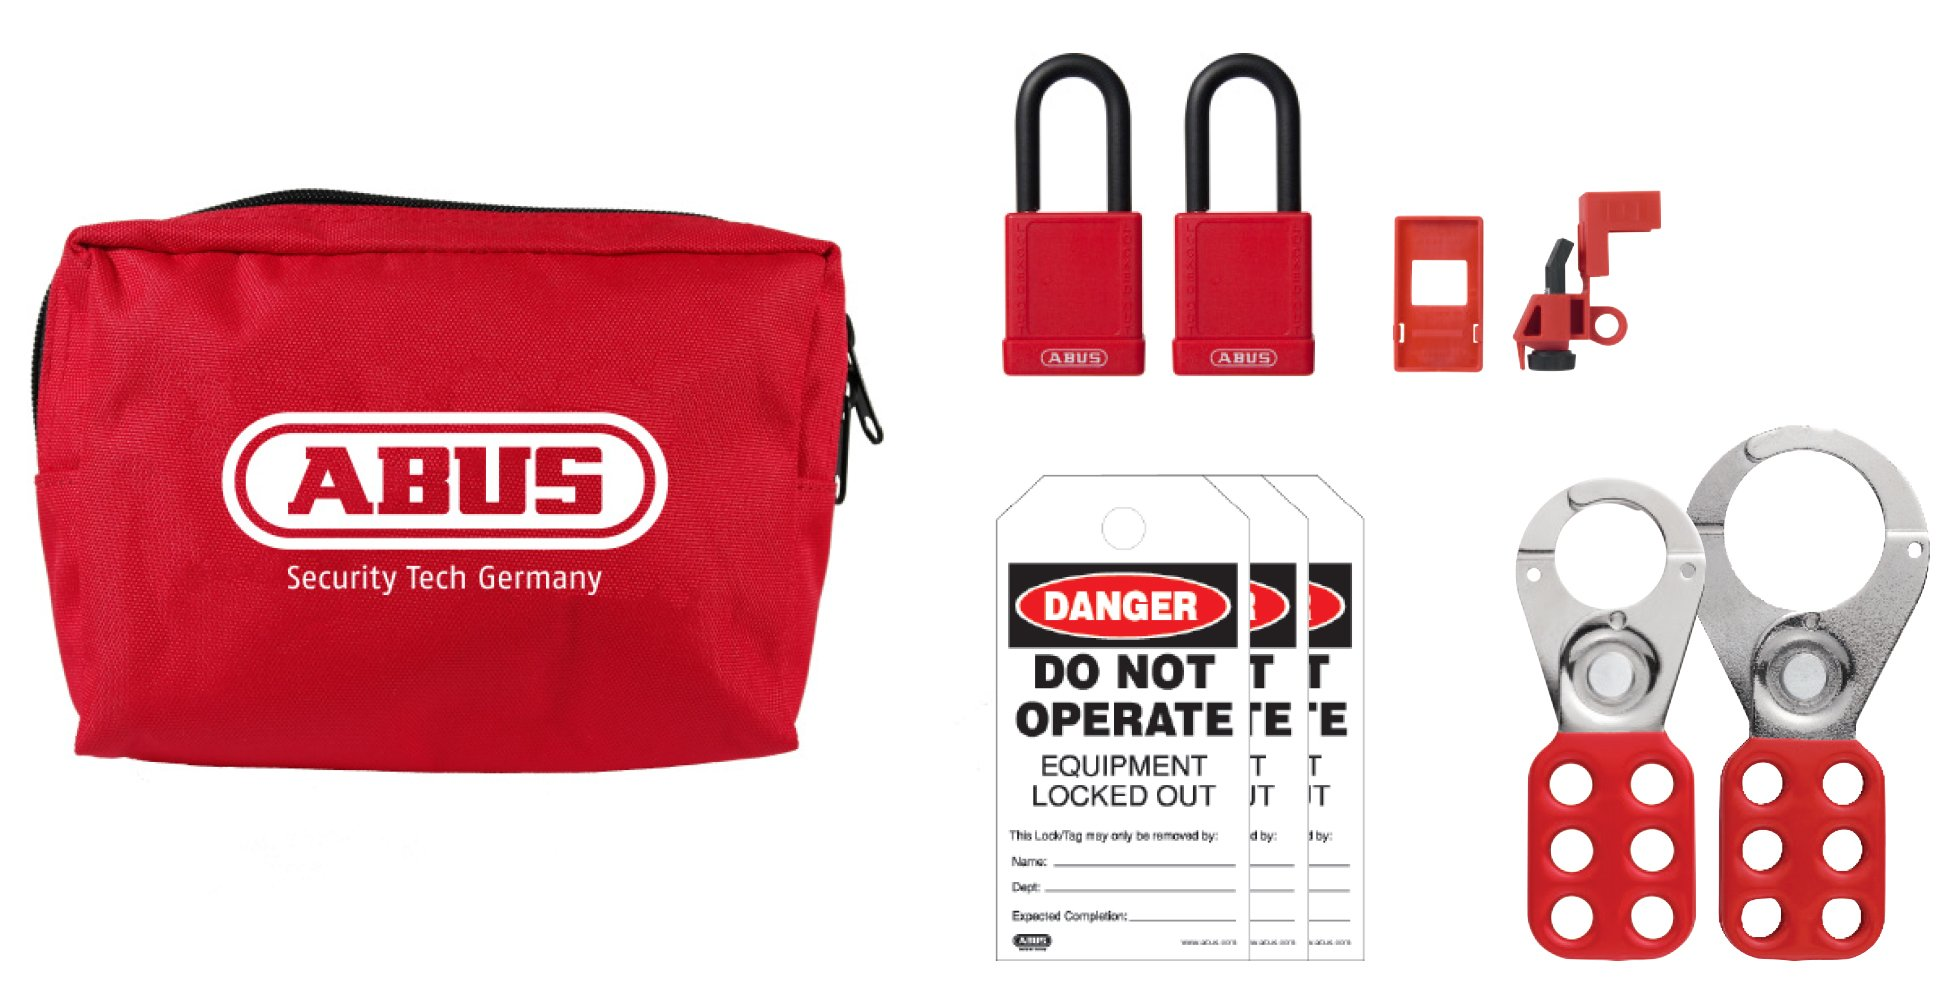 ABUS K900 Safety Lockout Tagout Personal Safety Pouch Kit, Small